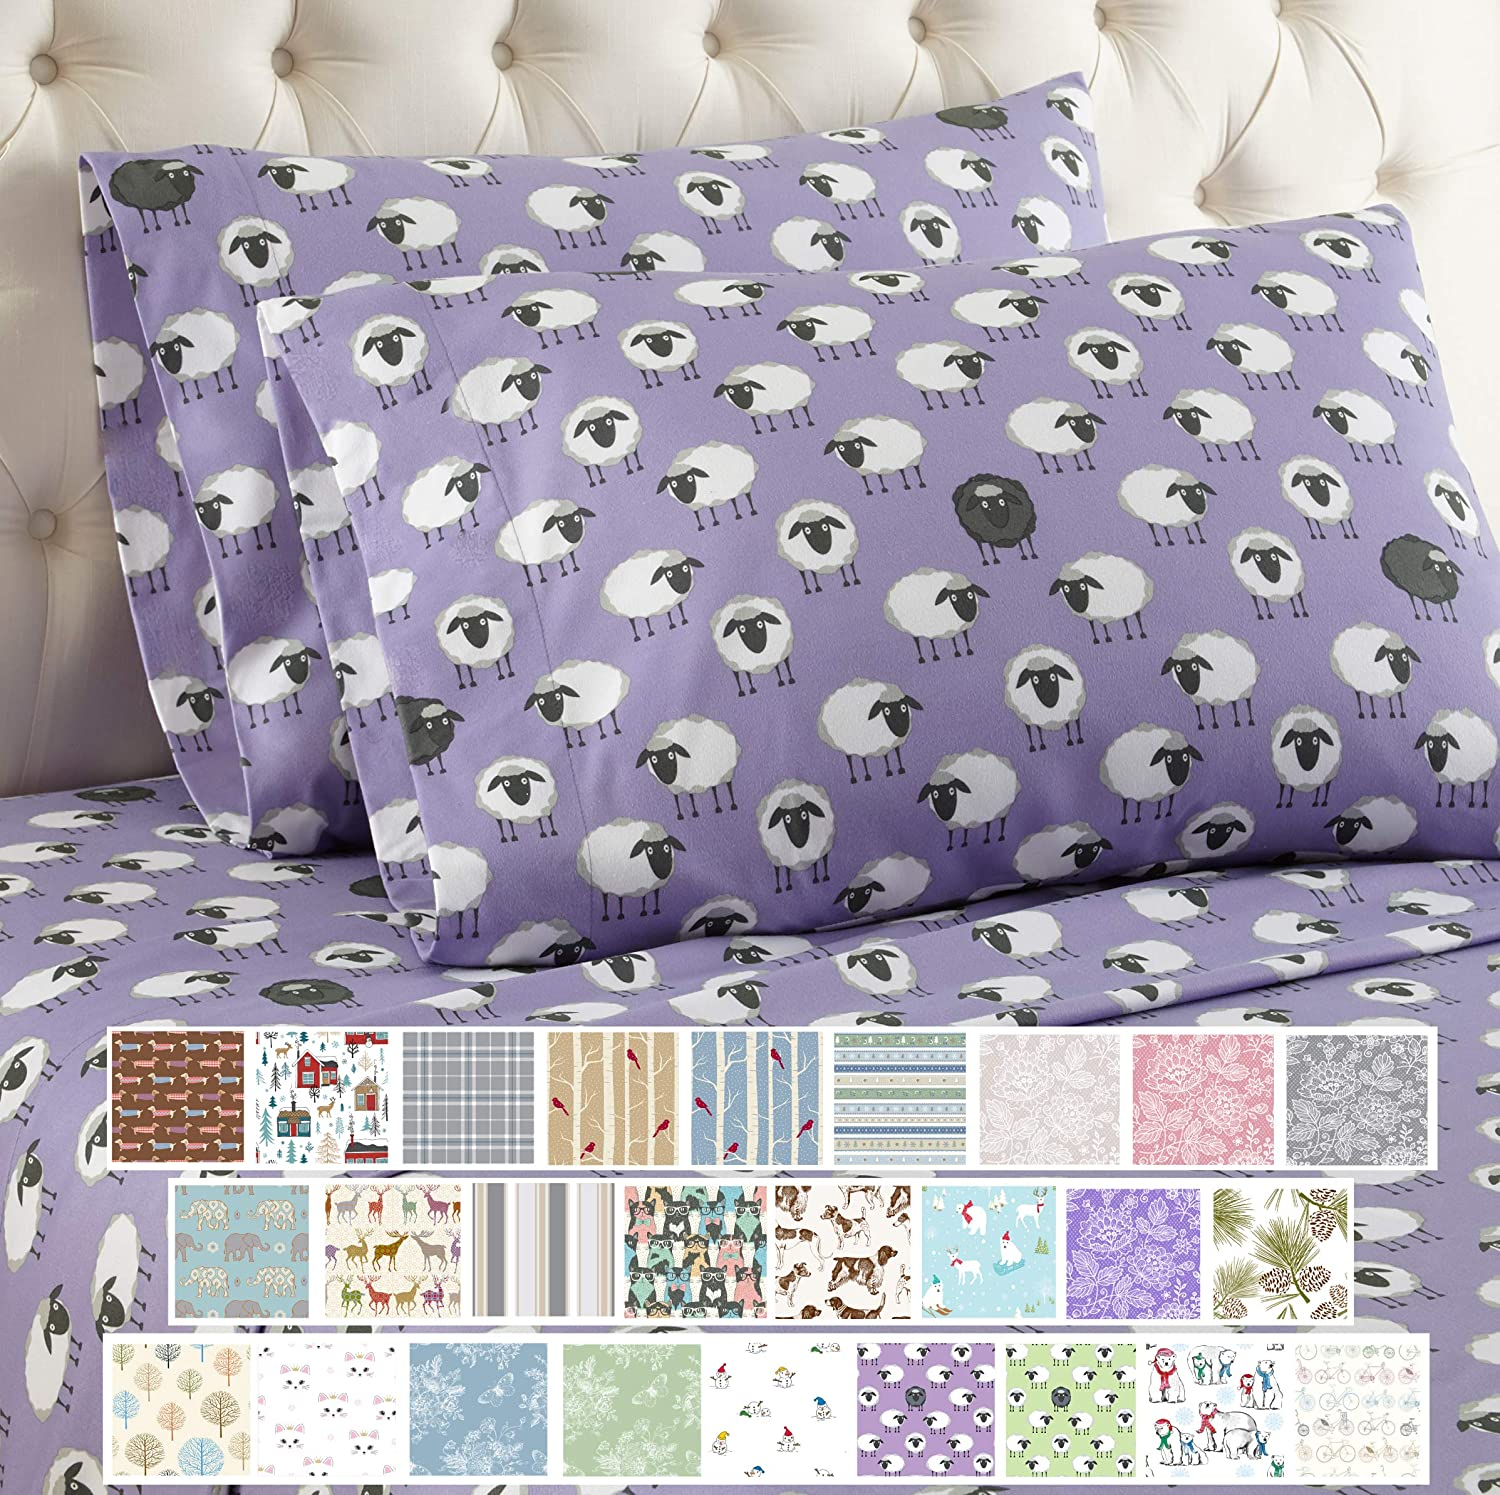 Amazon Com Thermee Micro Flannel Counting Sheep Lavendar Sheet Set Cal King Lavender Home Kitchen